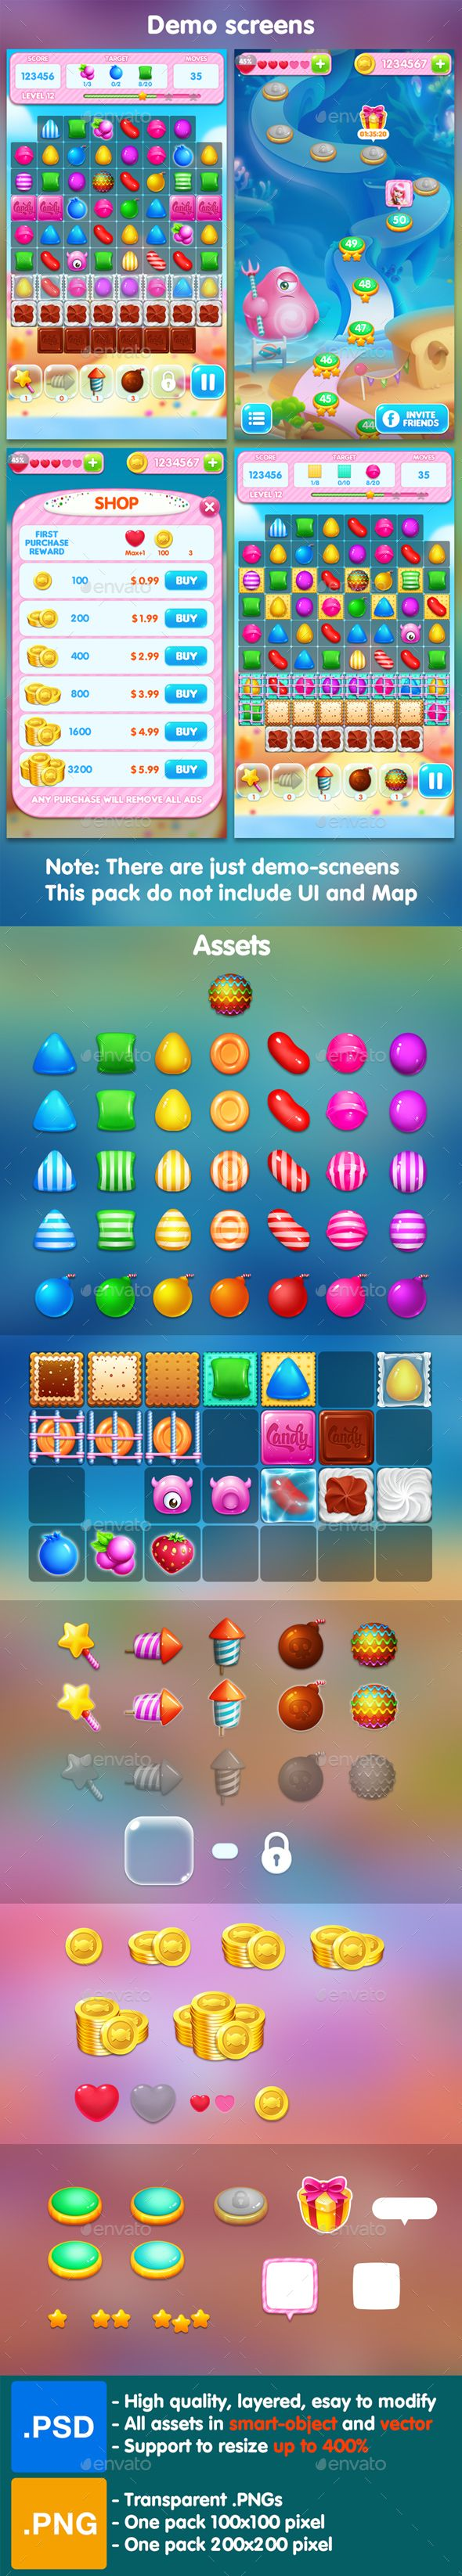 Pin by Irawan Setiadi on Game Assets | Match 3 games, Match